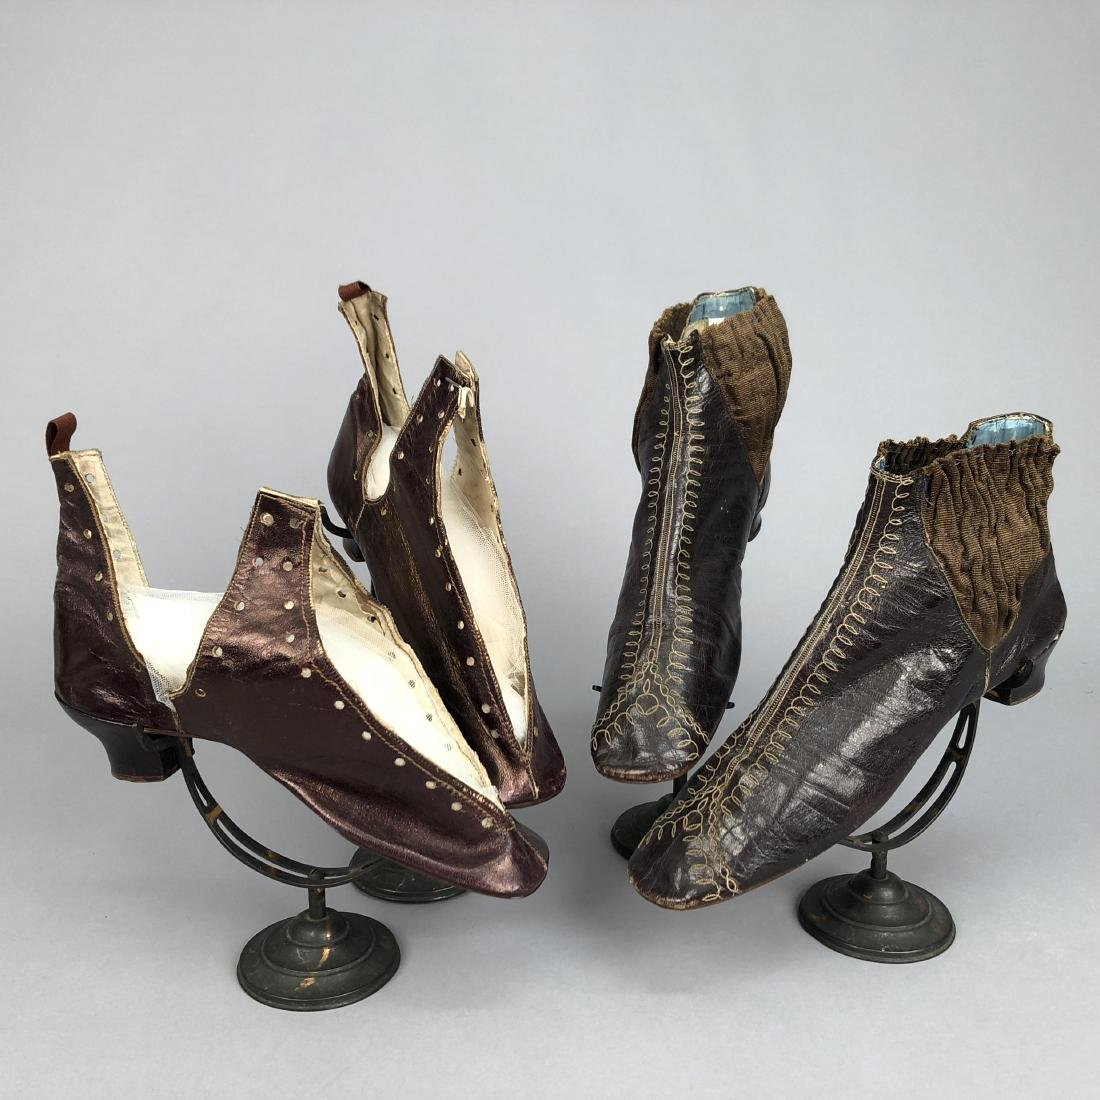 EMBROIDERED BOOTS with ELASTIC INSET, 1850s - 3